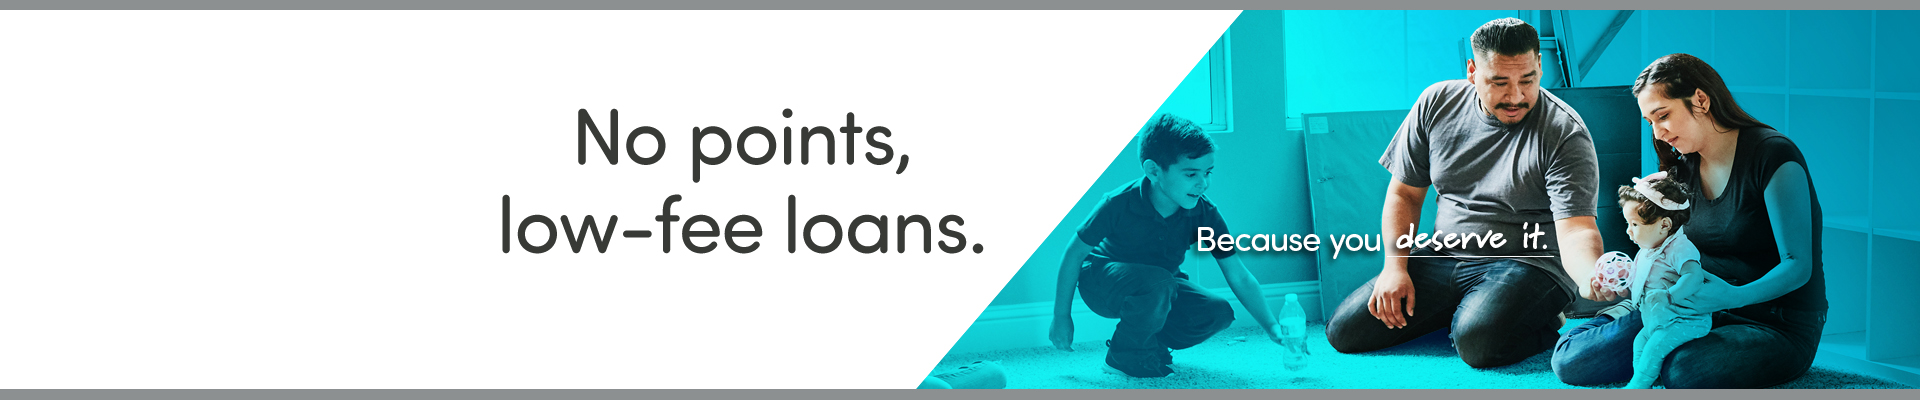 No points, low-fee loans